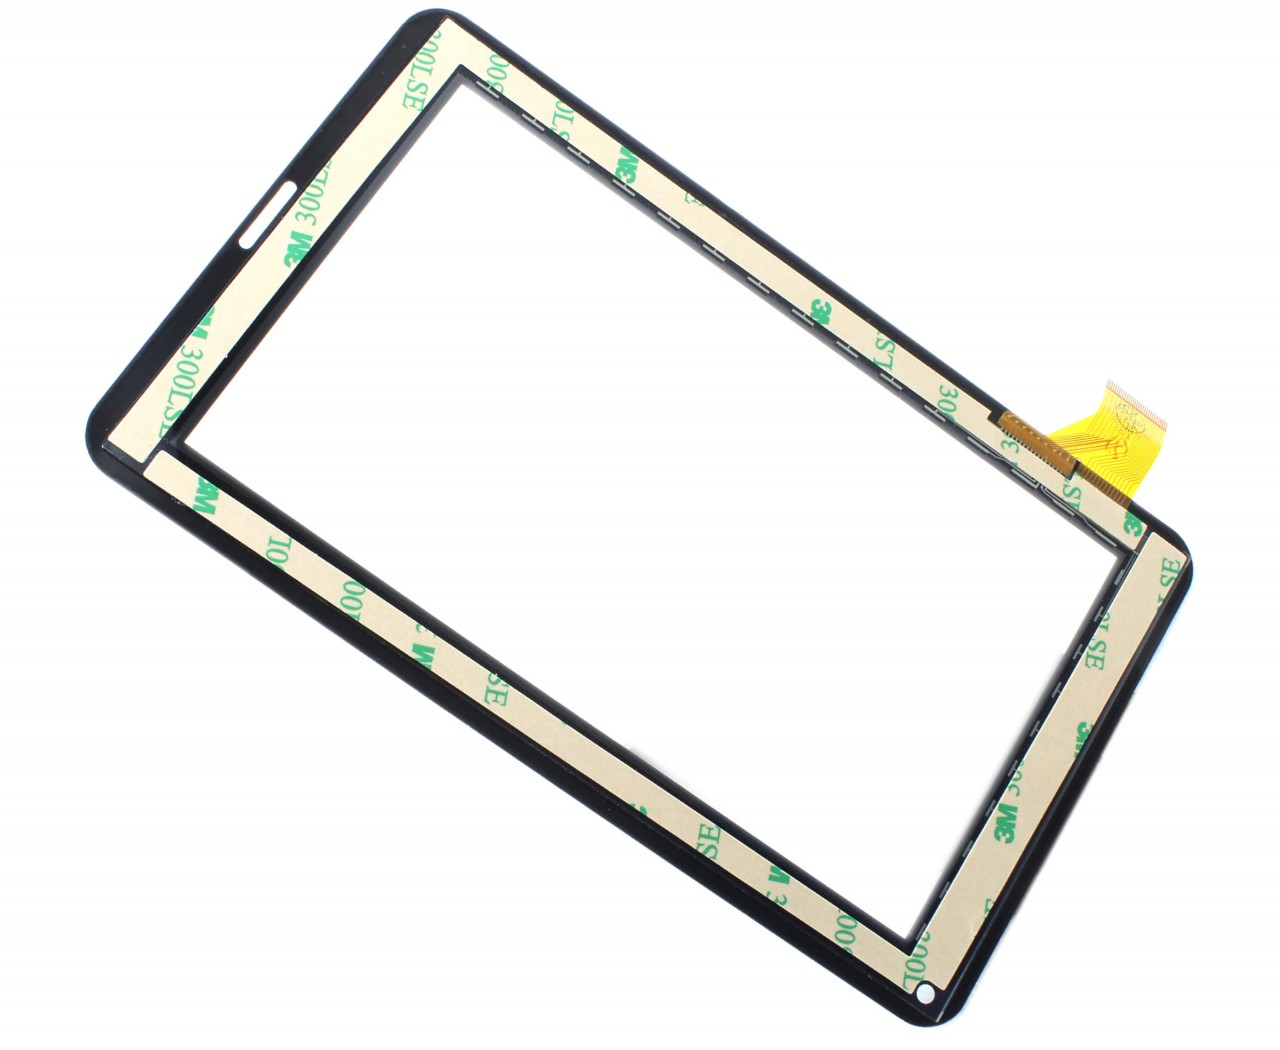 Touchscreen Digitizer Kurio C14100 Geam Sticla Tableta imagine powerlaptop.ro 2021